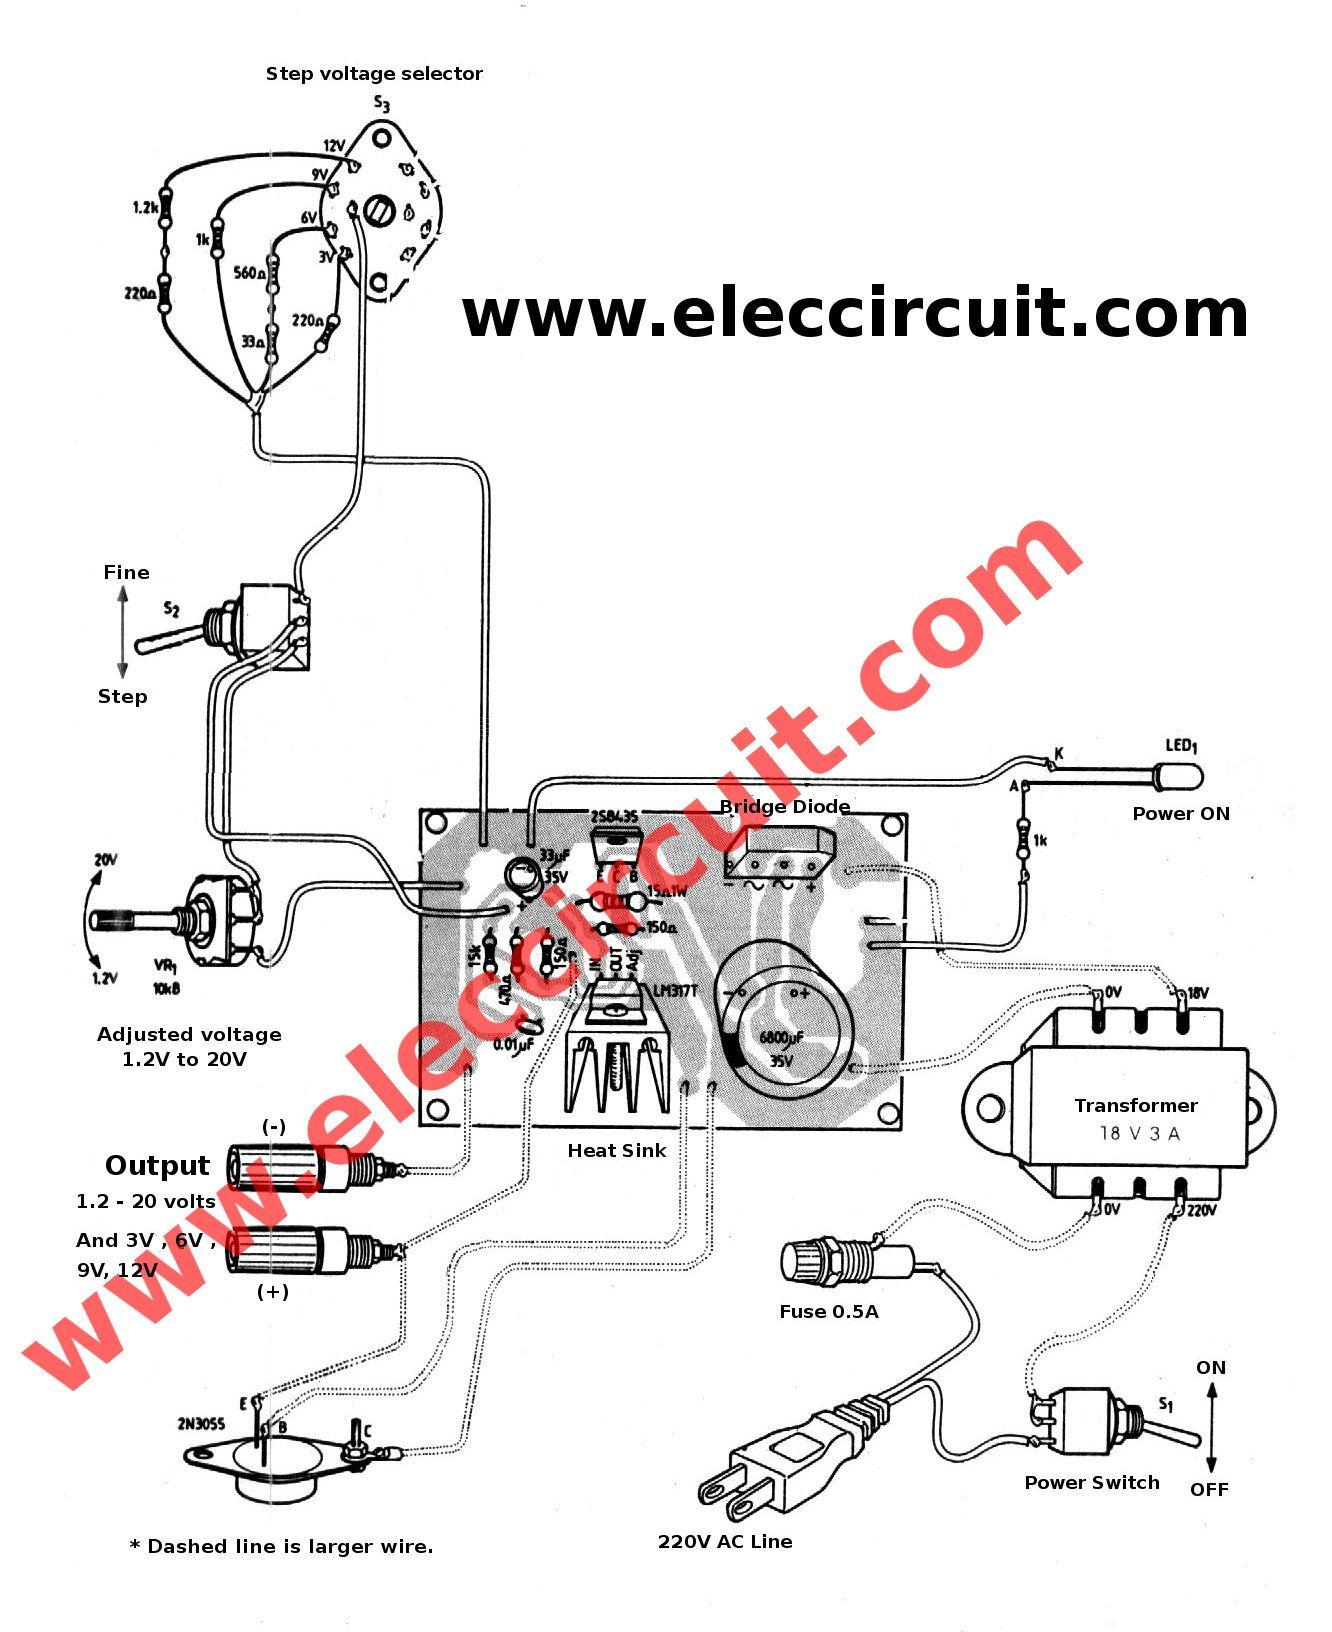 3a Adjustable Voltage Regulator Circuit With Pcb Eleccircuitcom If You Know The Schematic Diagram For A Transistor Which Is Need Power Supply We Recommend Lm317 It Use Normally Component Popular Dc And